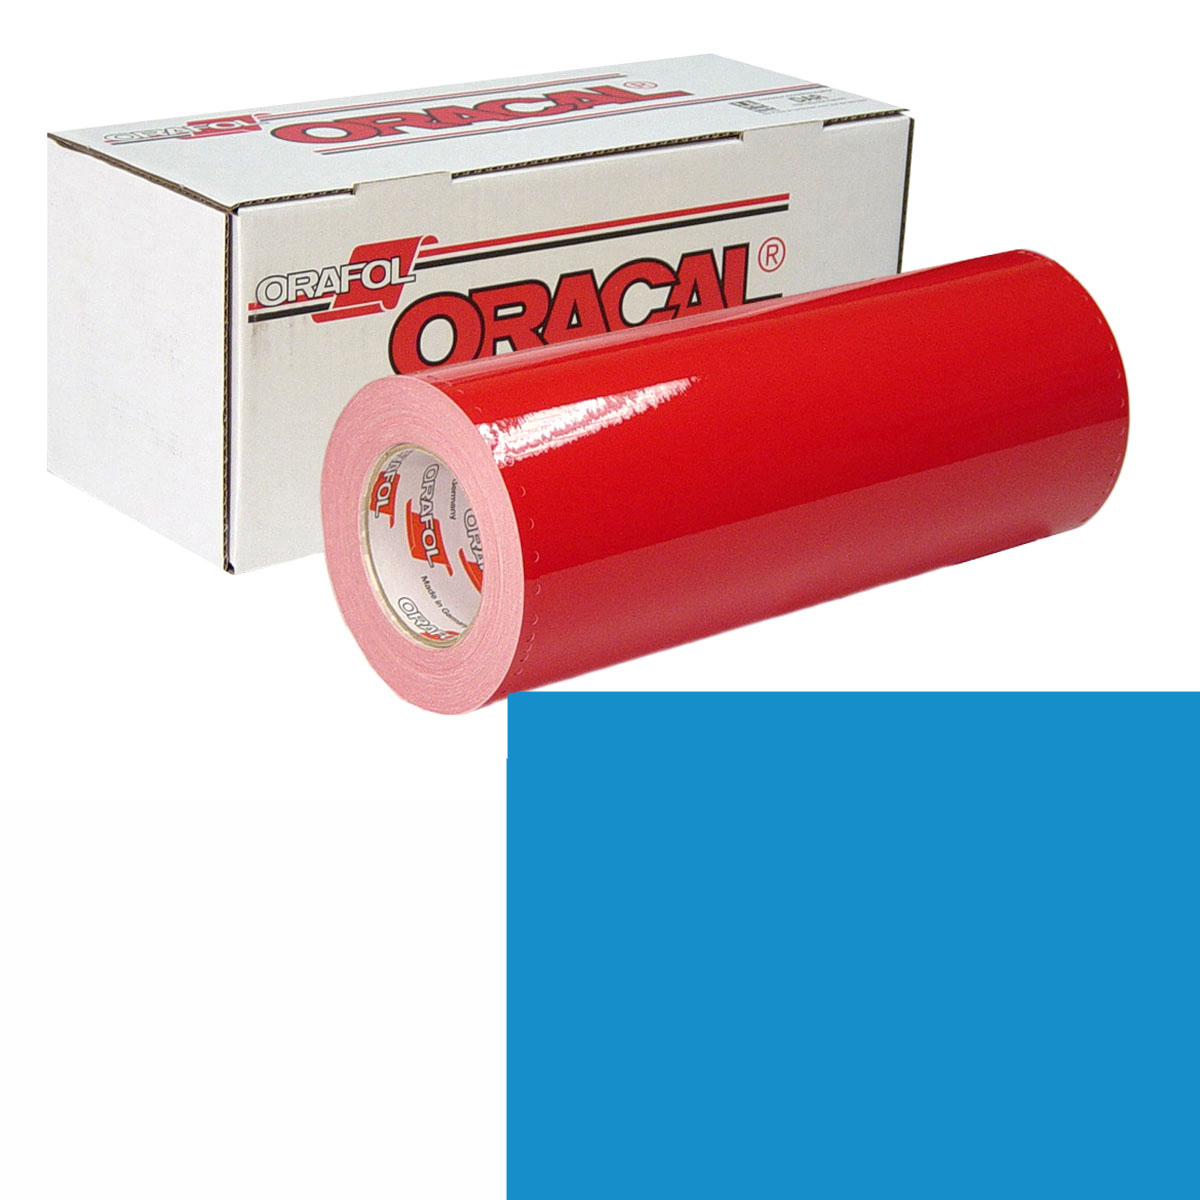 ORACAL 951 15in X 10yd 053 Light Blue